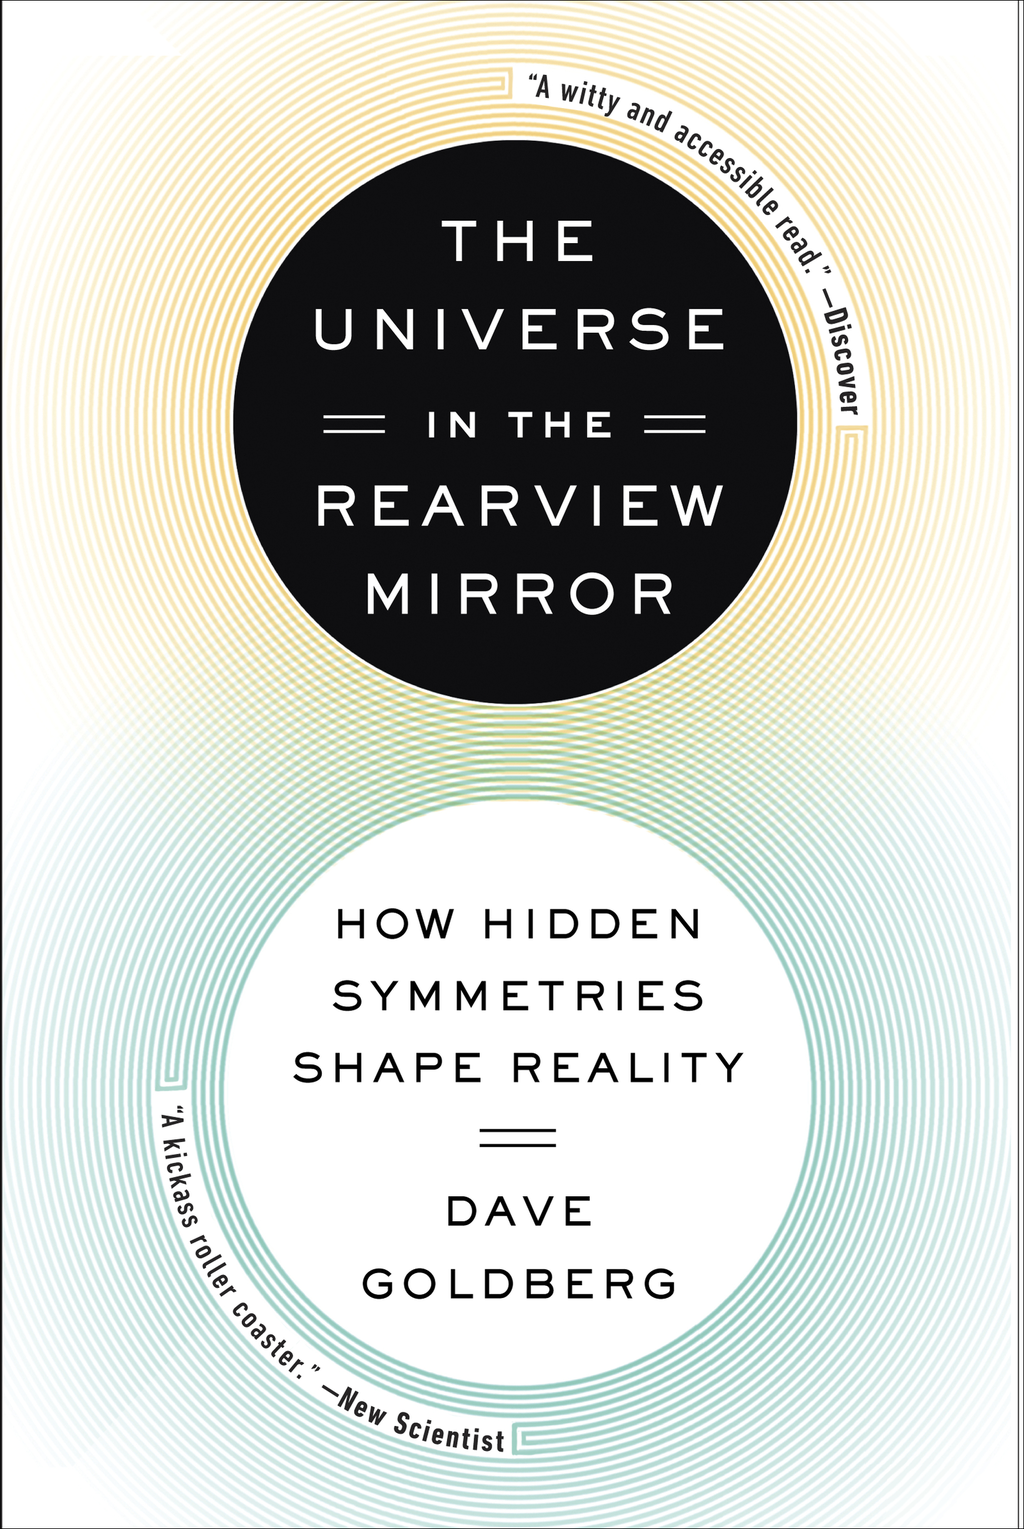 The Universe in the Rearview Mirror How Hidden Symmetries Shape Reality